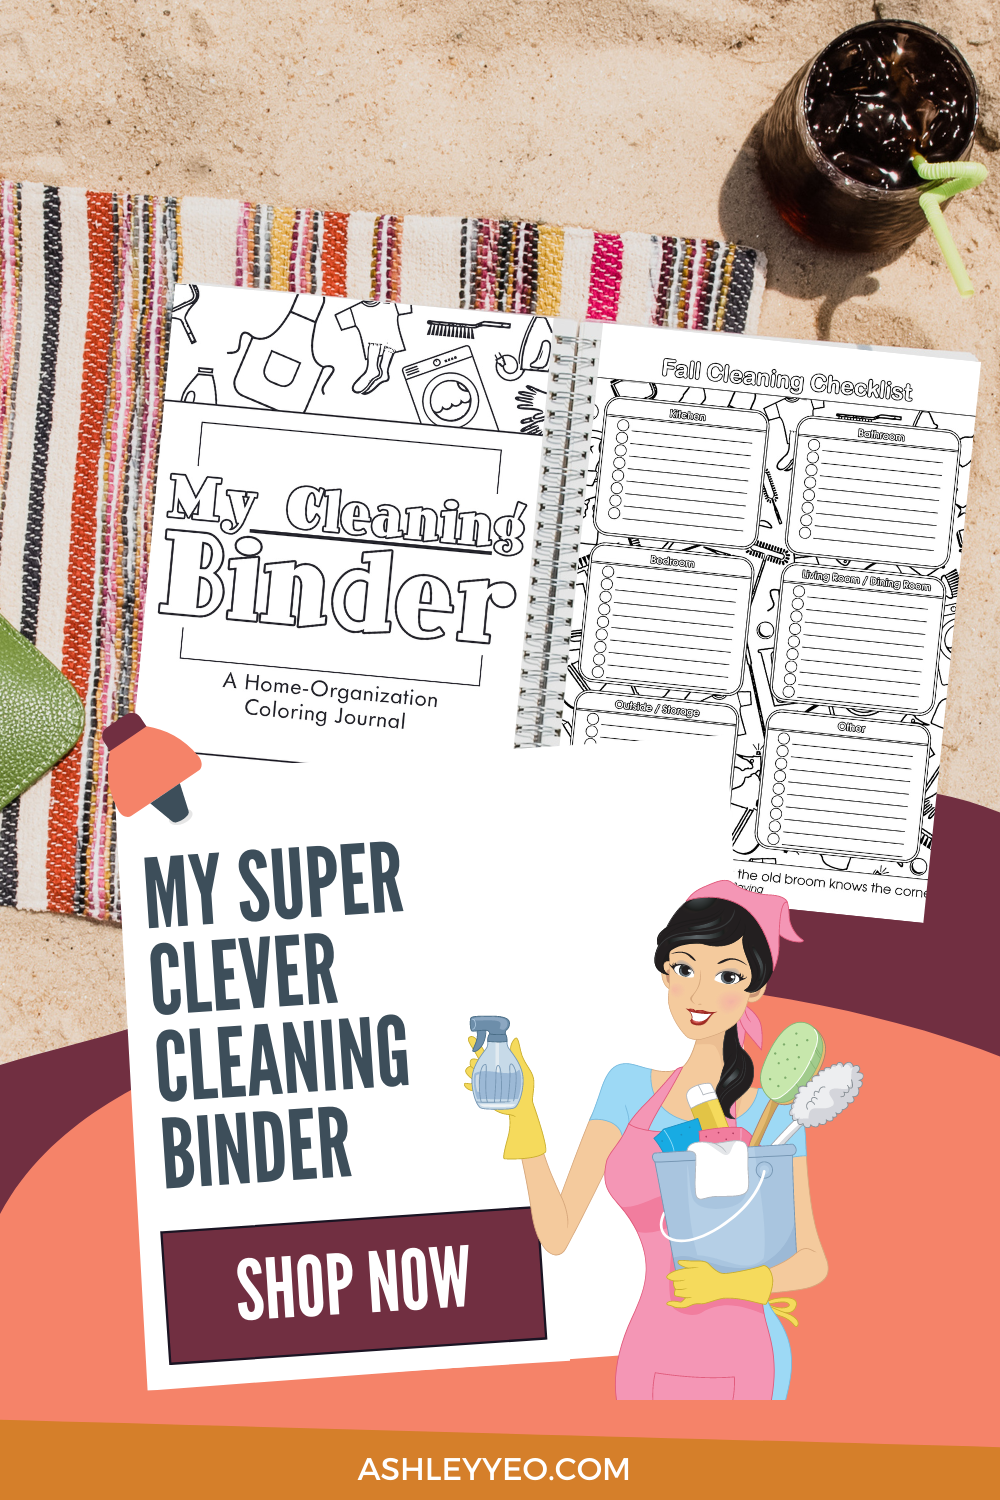 The Clever Cleaning Binder